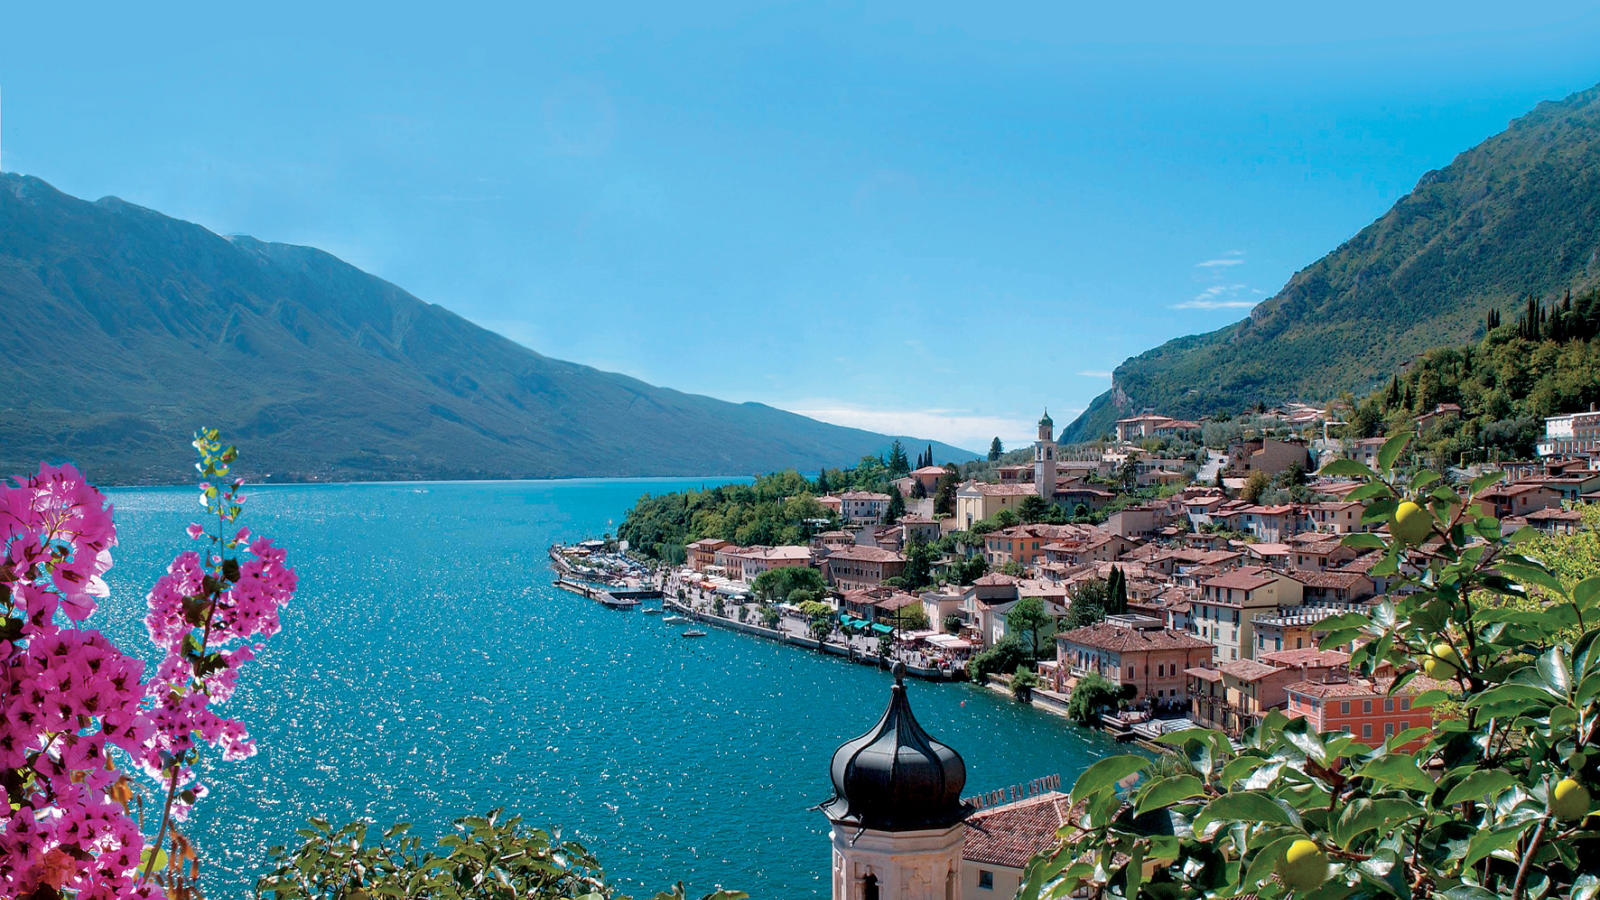 Holidays To Limone Lake Garda 2014 Topflight